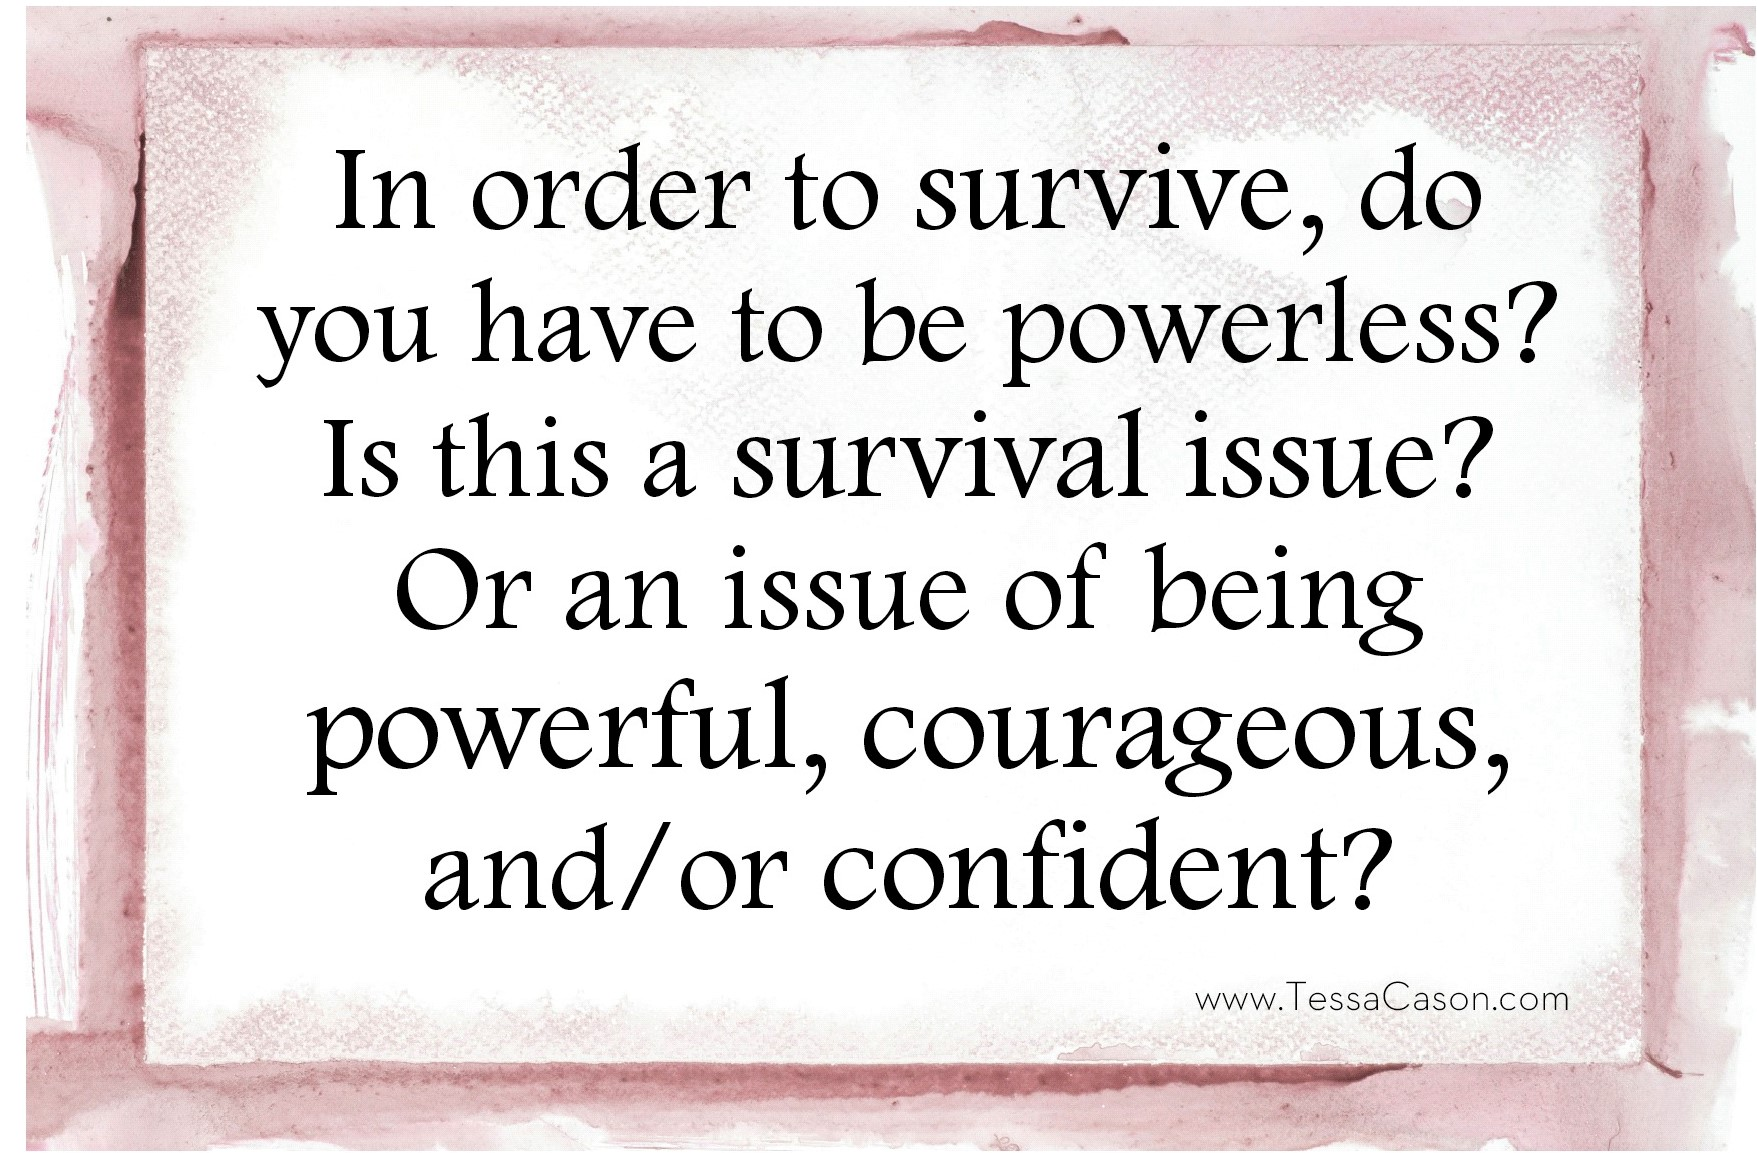 In order to survive question